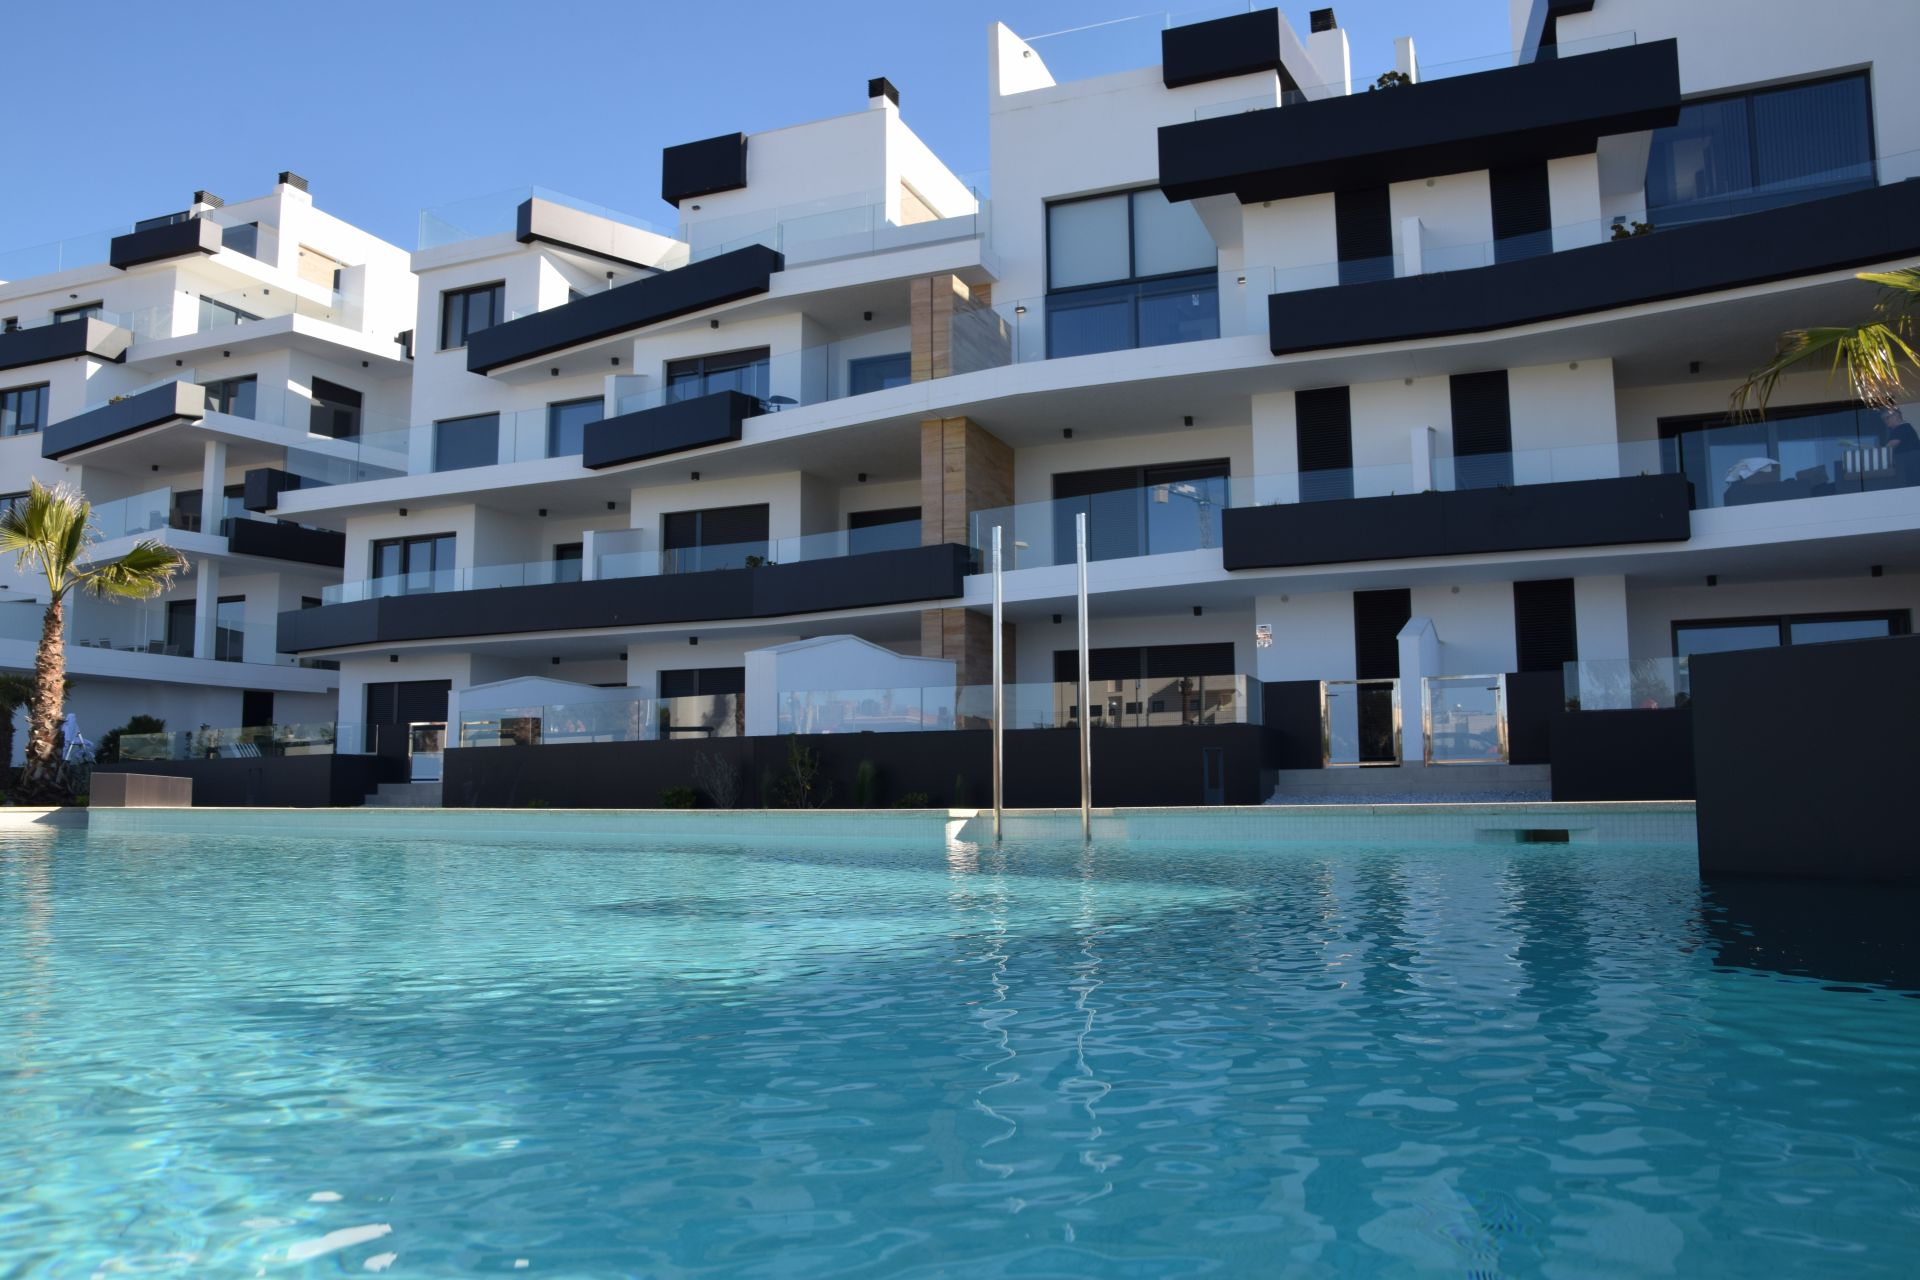 2 and 3 bedroom apartments in complex with pool in Orihuela Costa 2